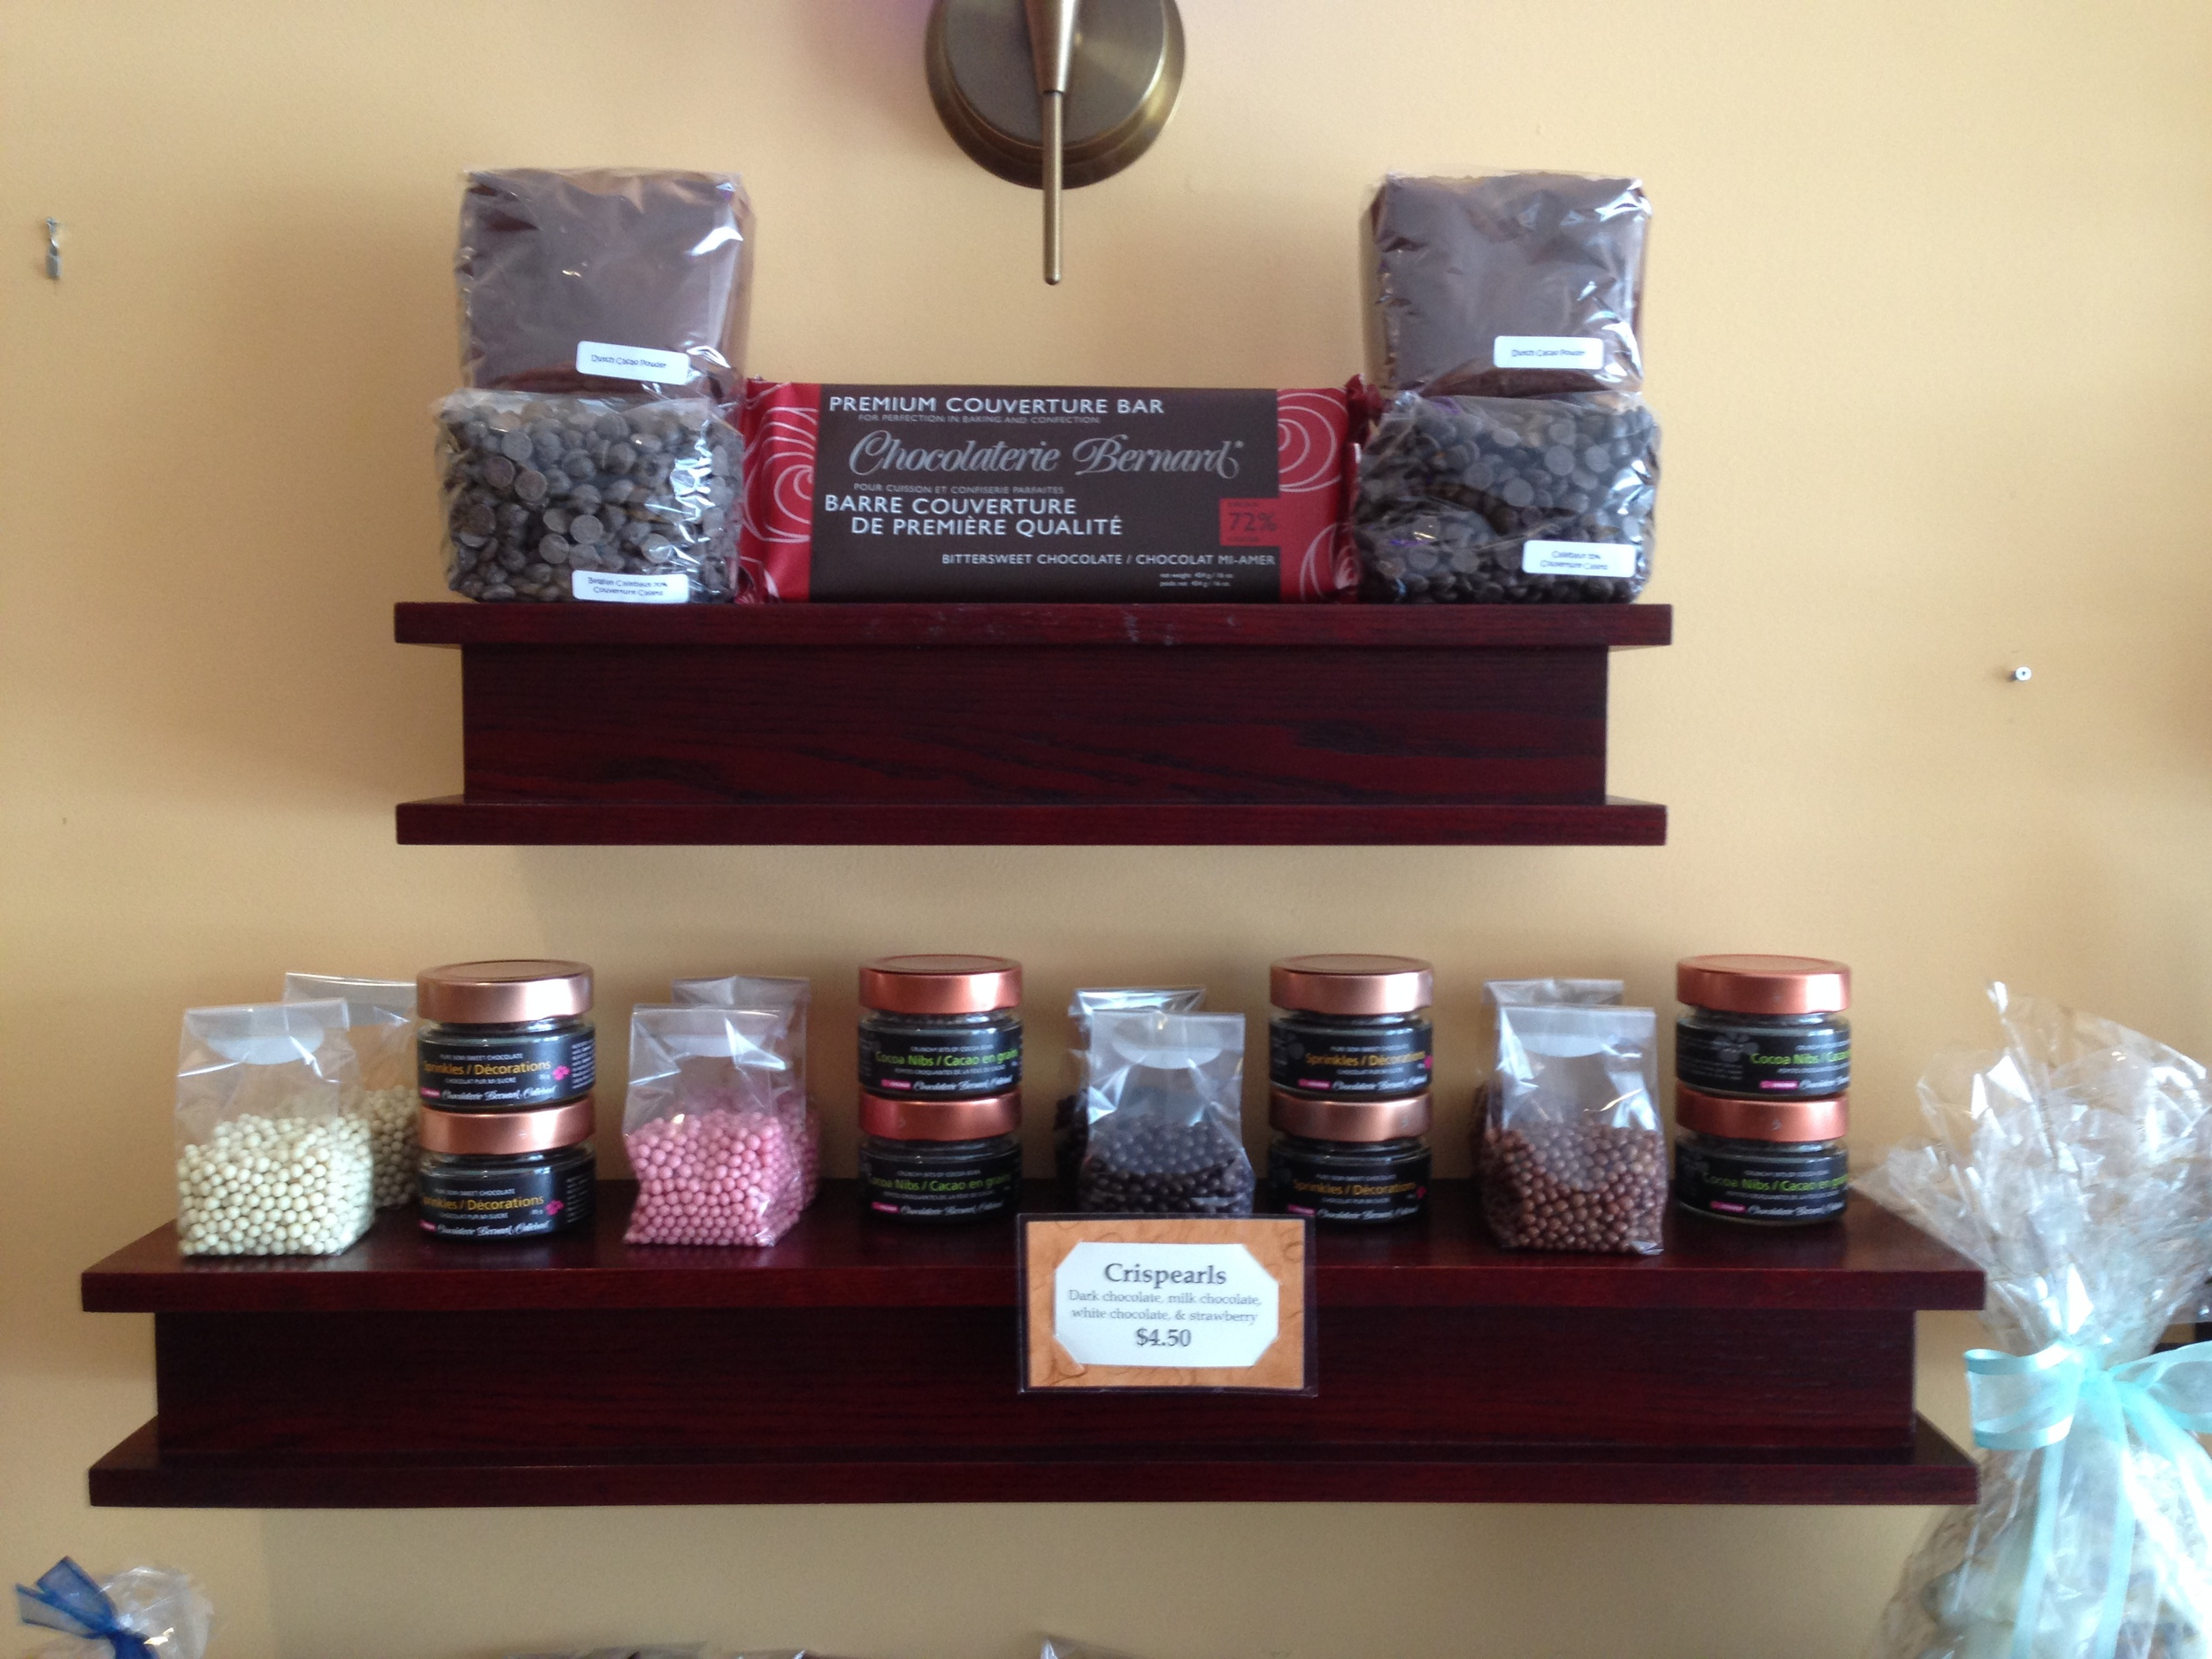 Take some high quality baking chocolate and cocoa home to make your own sweet treats!